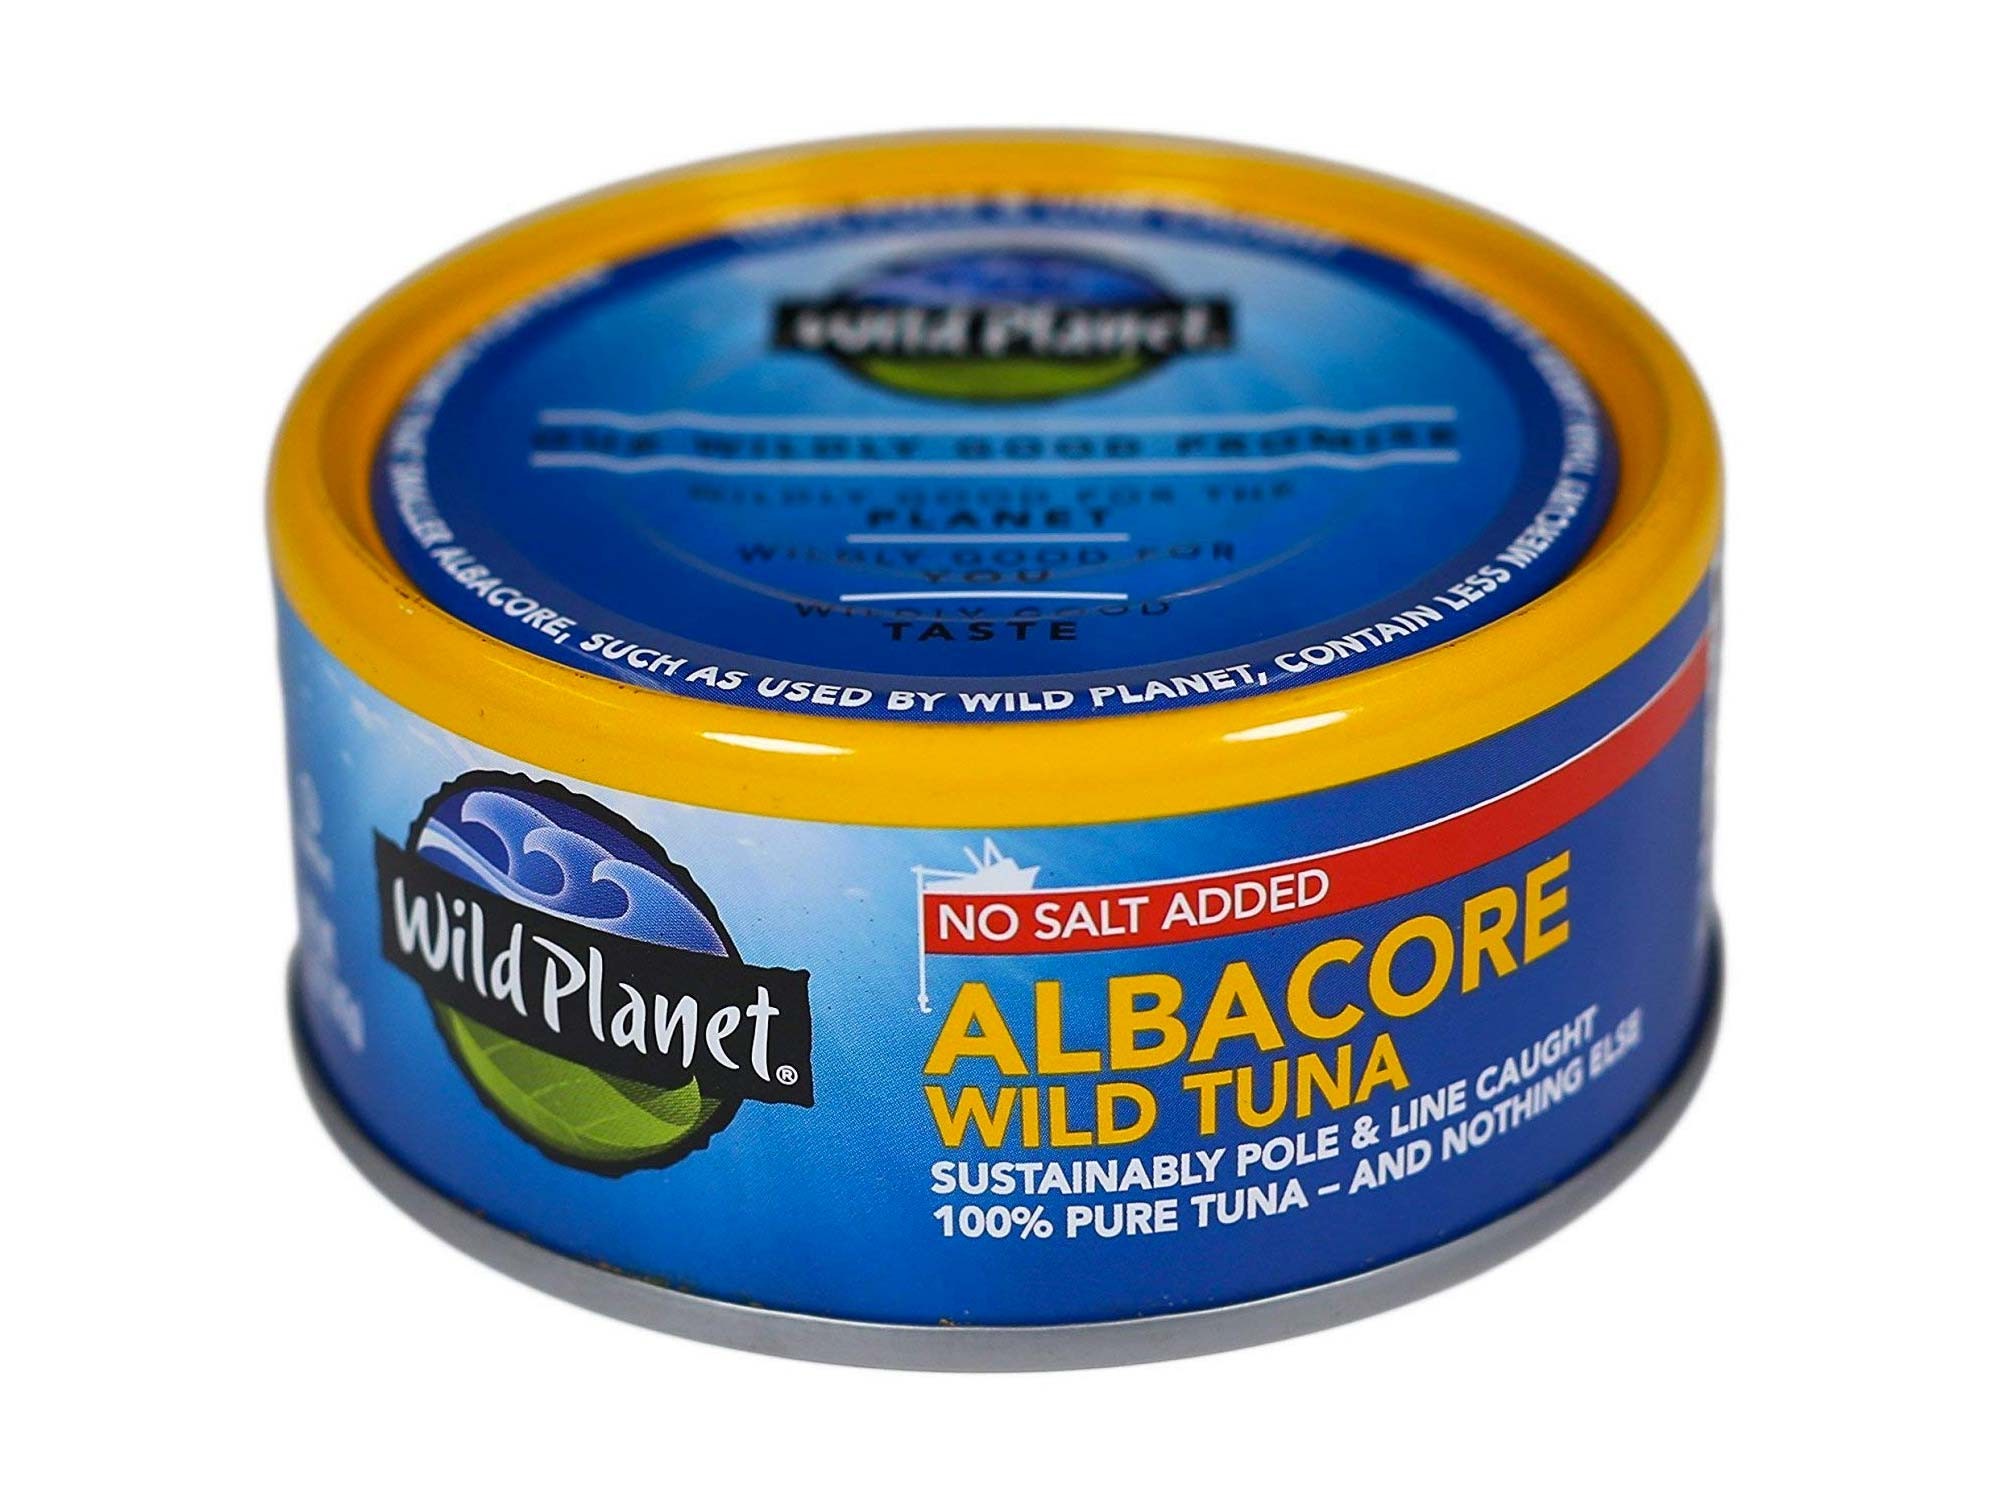 Wild Planet Wild Albacore Tuna, No Salt Added, Keto and Paleo